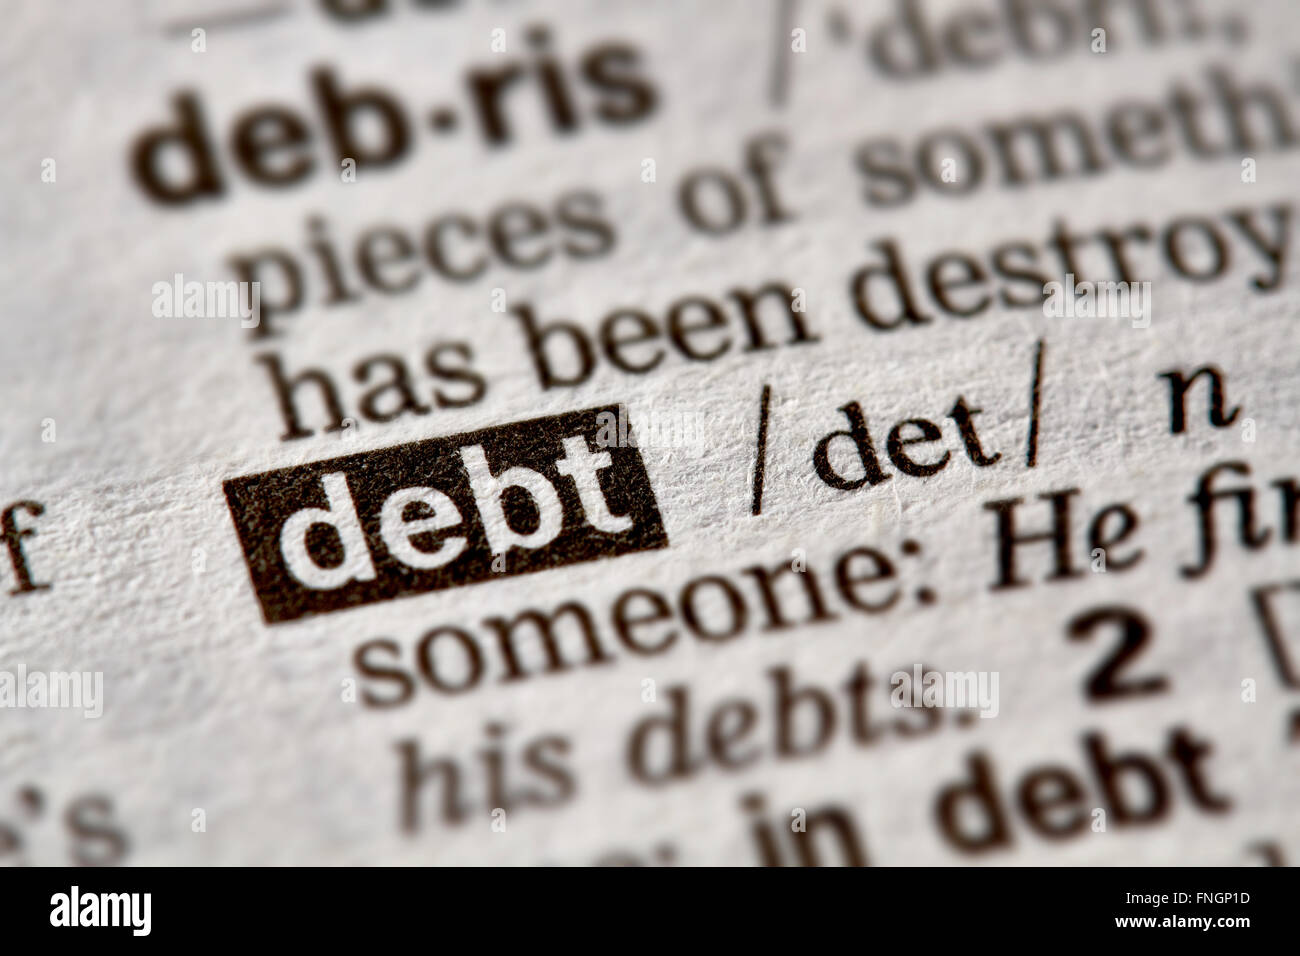 Debt Word Definition Text in Dictionary Page - Stock Image